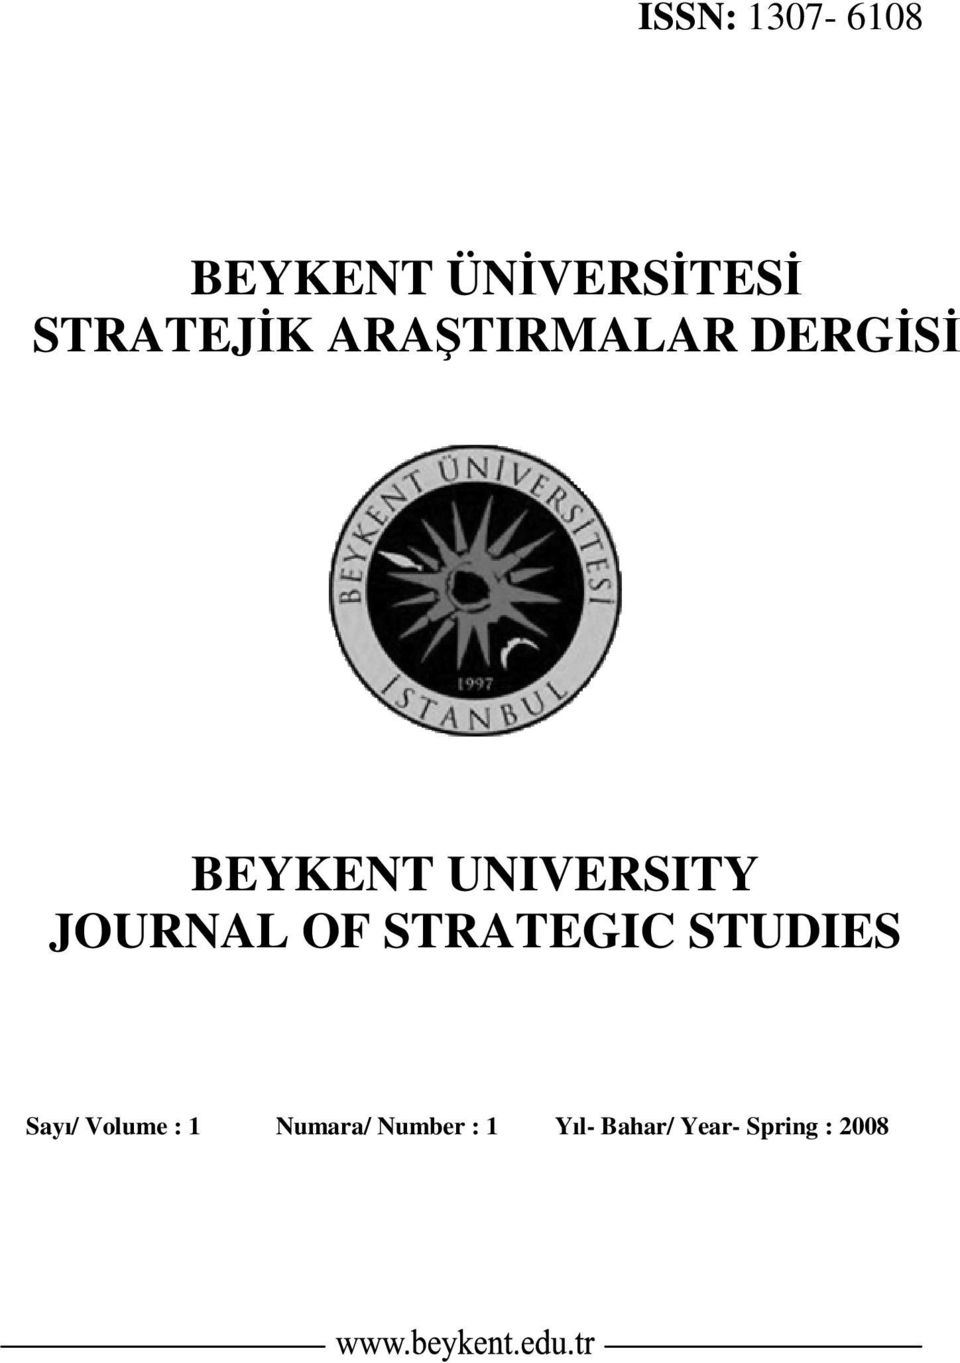 UNIVERSITY JOURNAL OF STRATEGIC STUDIES Sayı/